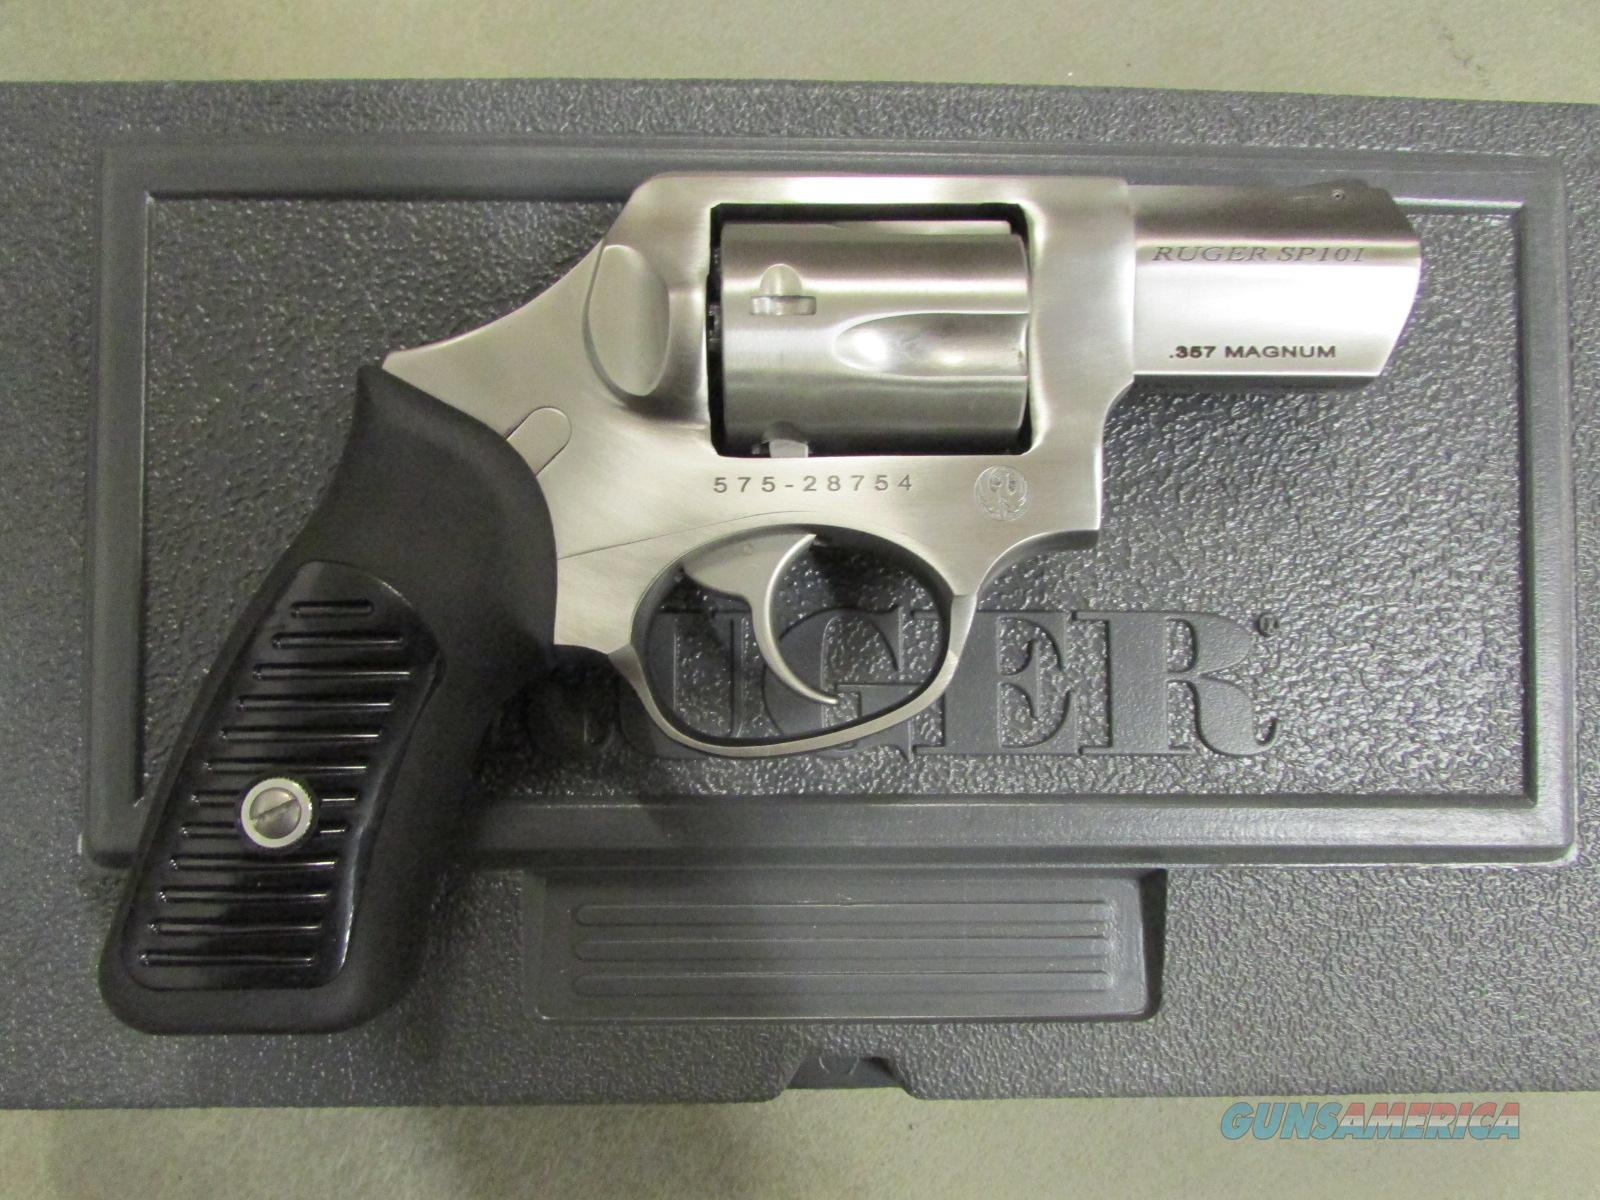 "Ruger SP101 Double-Action 2.25"" Stainless .357 Magnum 5720  Guns > Pistols > Ruger Double Action Revolver > SP101 Type"